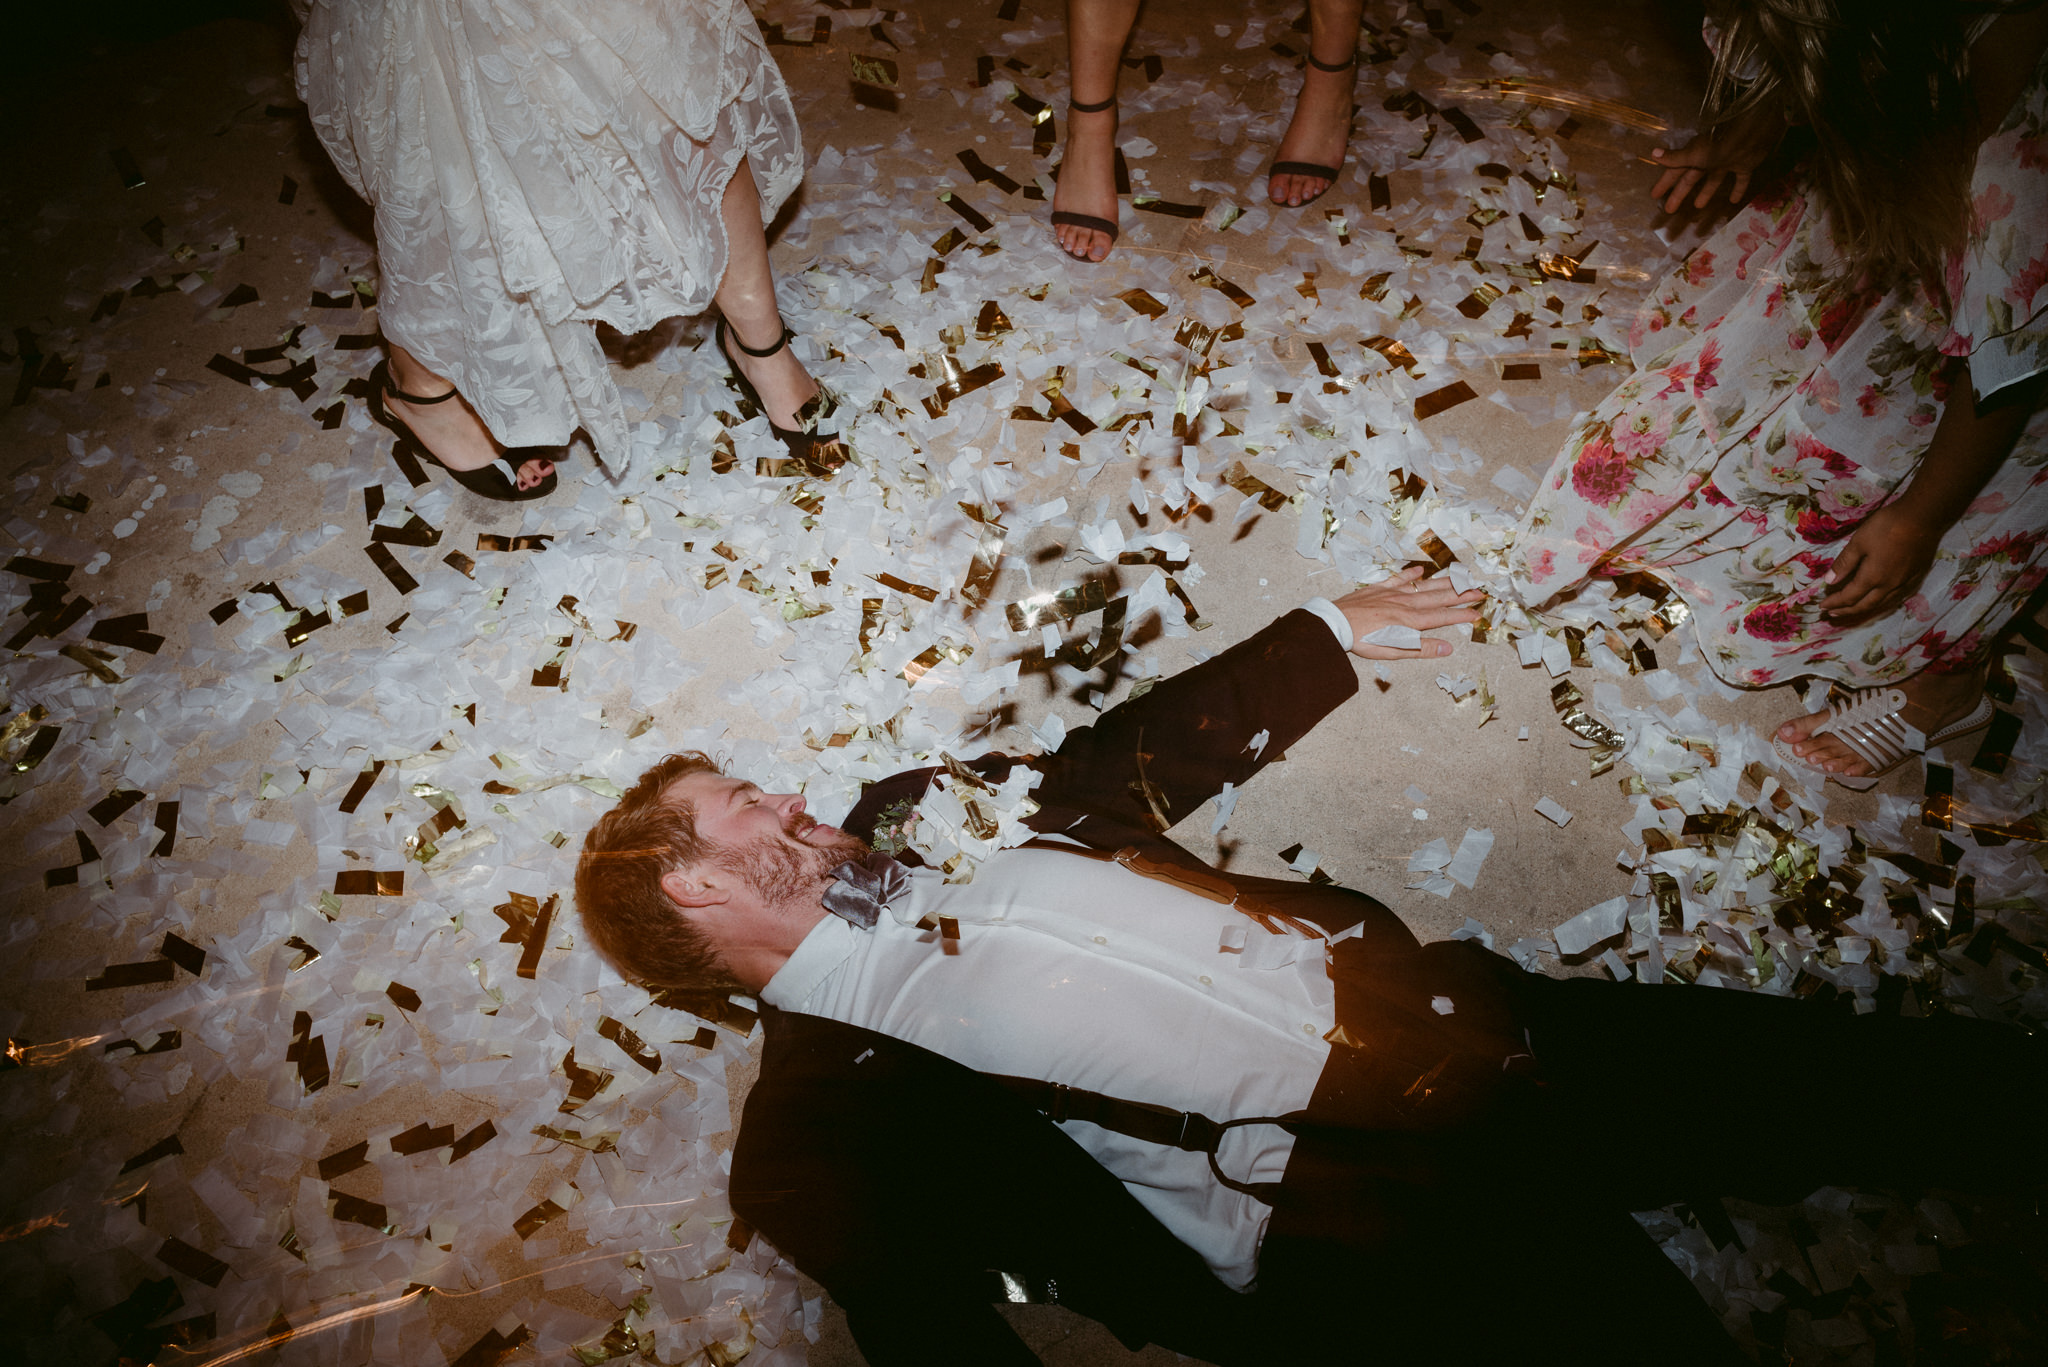 Confetti on the dance floor at wedding reception